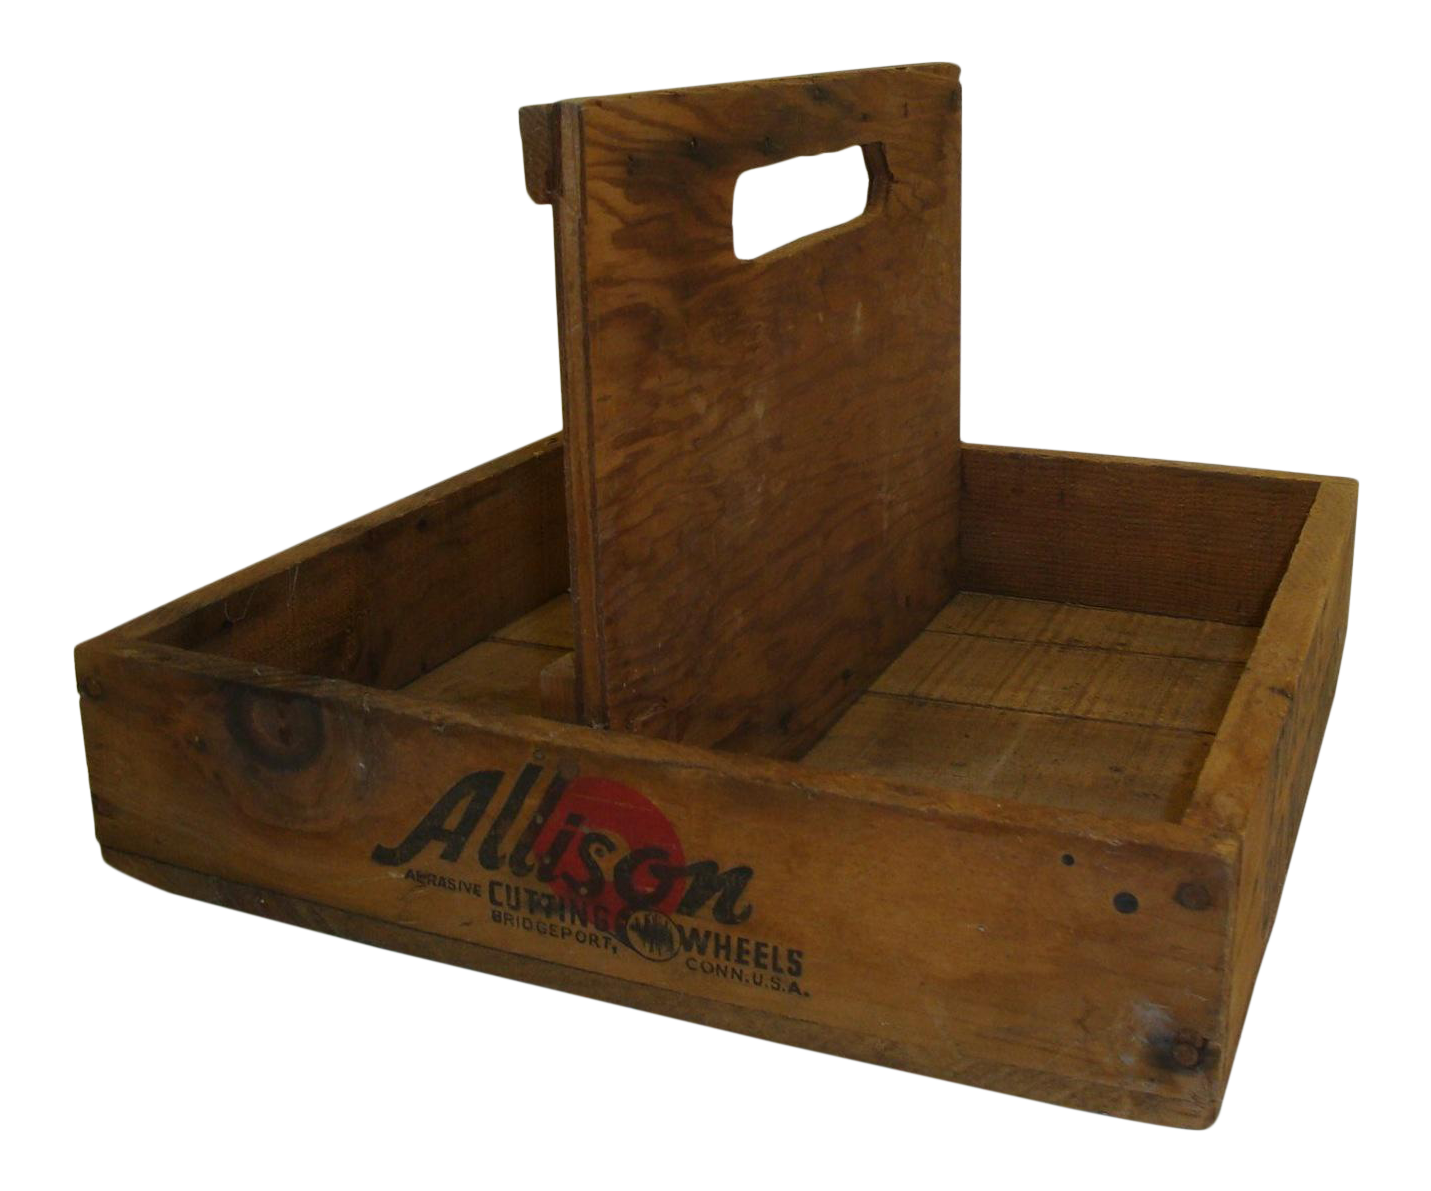 Vintage garden crate png. Rustic tool wooden caddy